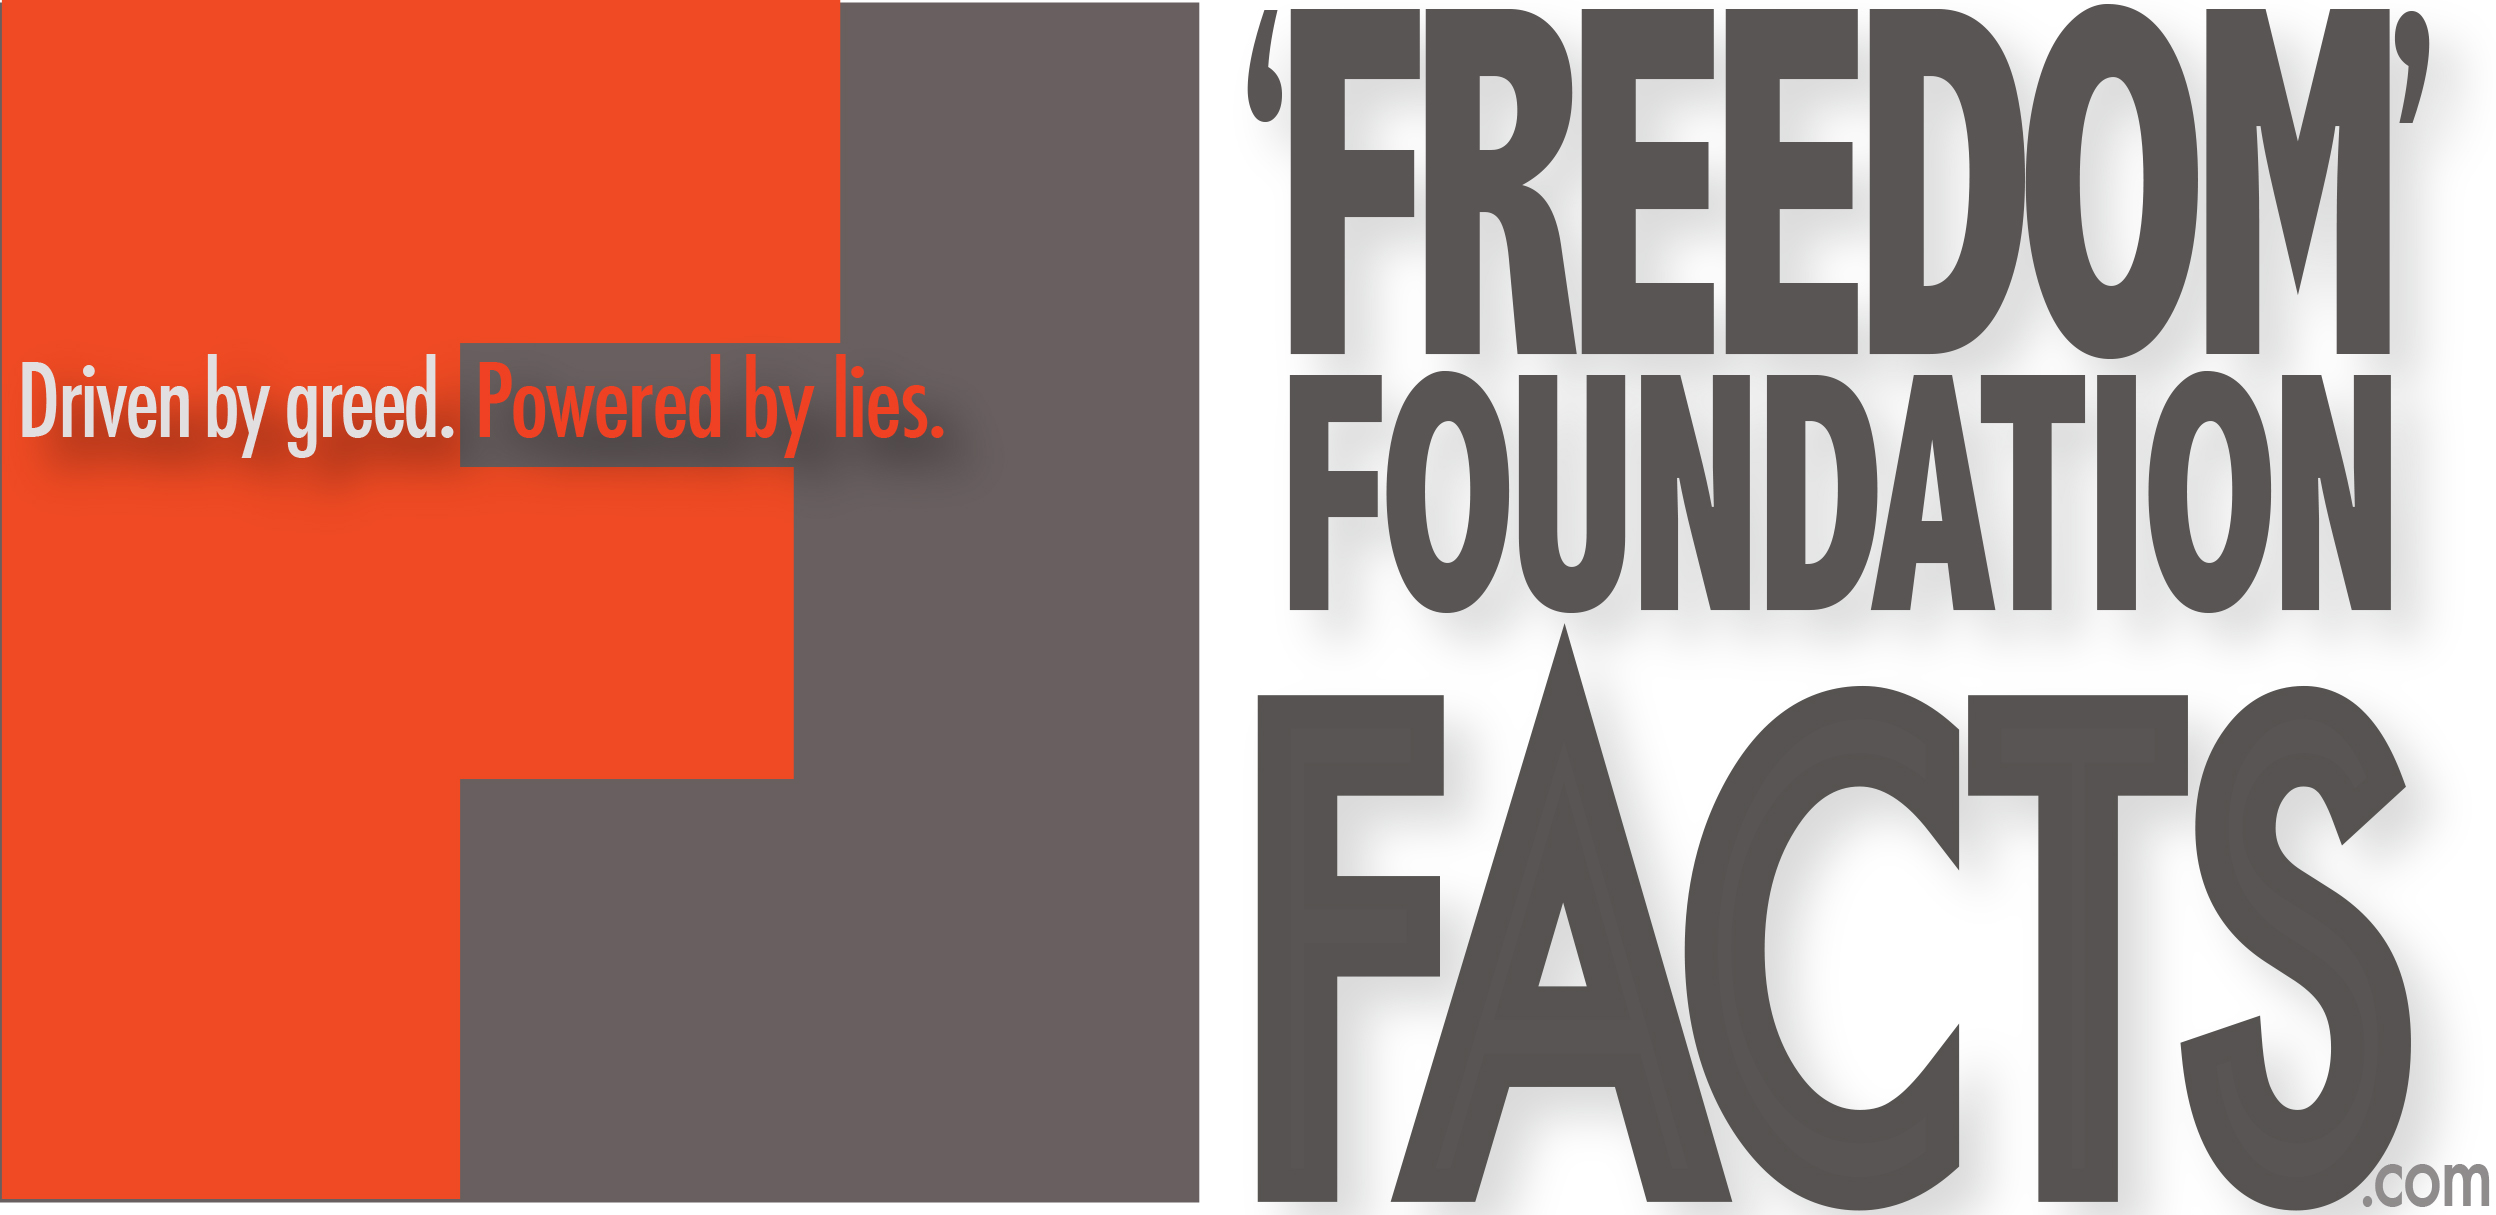 Freedom Foundation Facts